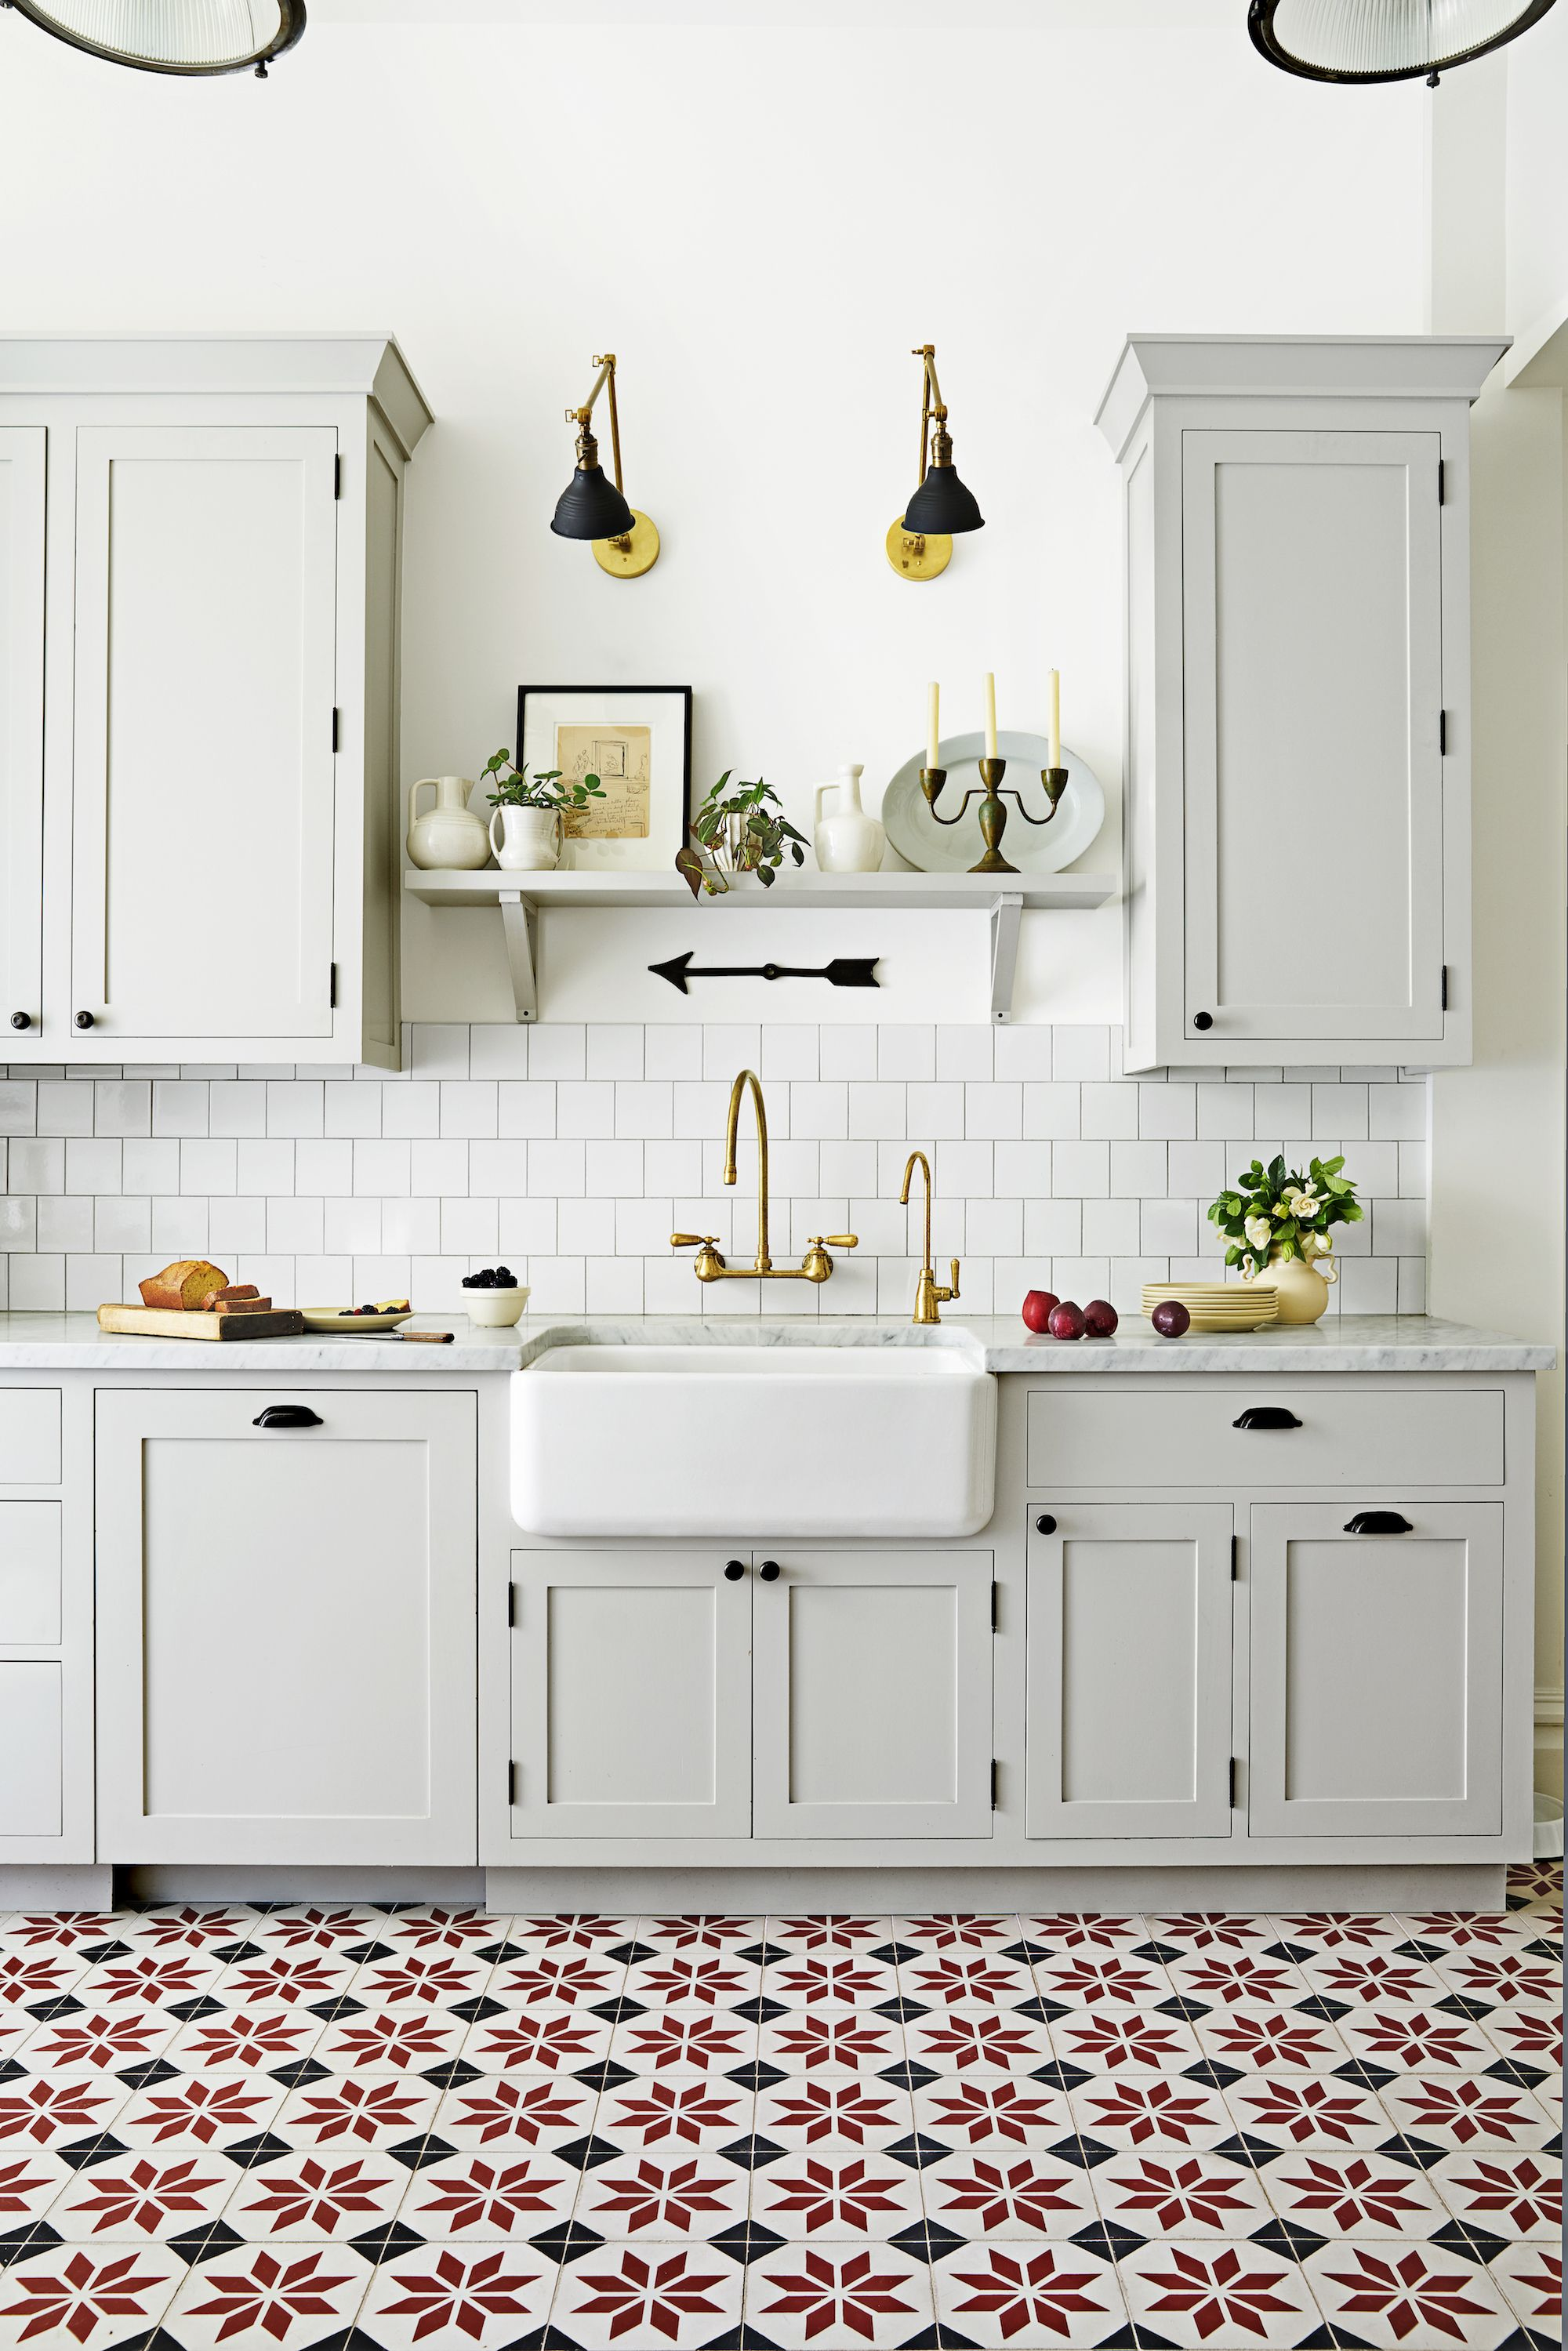 House And Kitchen Design on house and home furniture, house and interior design, house and kitchen appliances, house and pool design, house and home decorating,